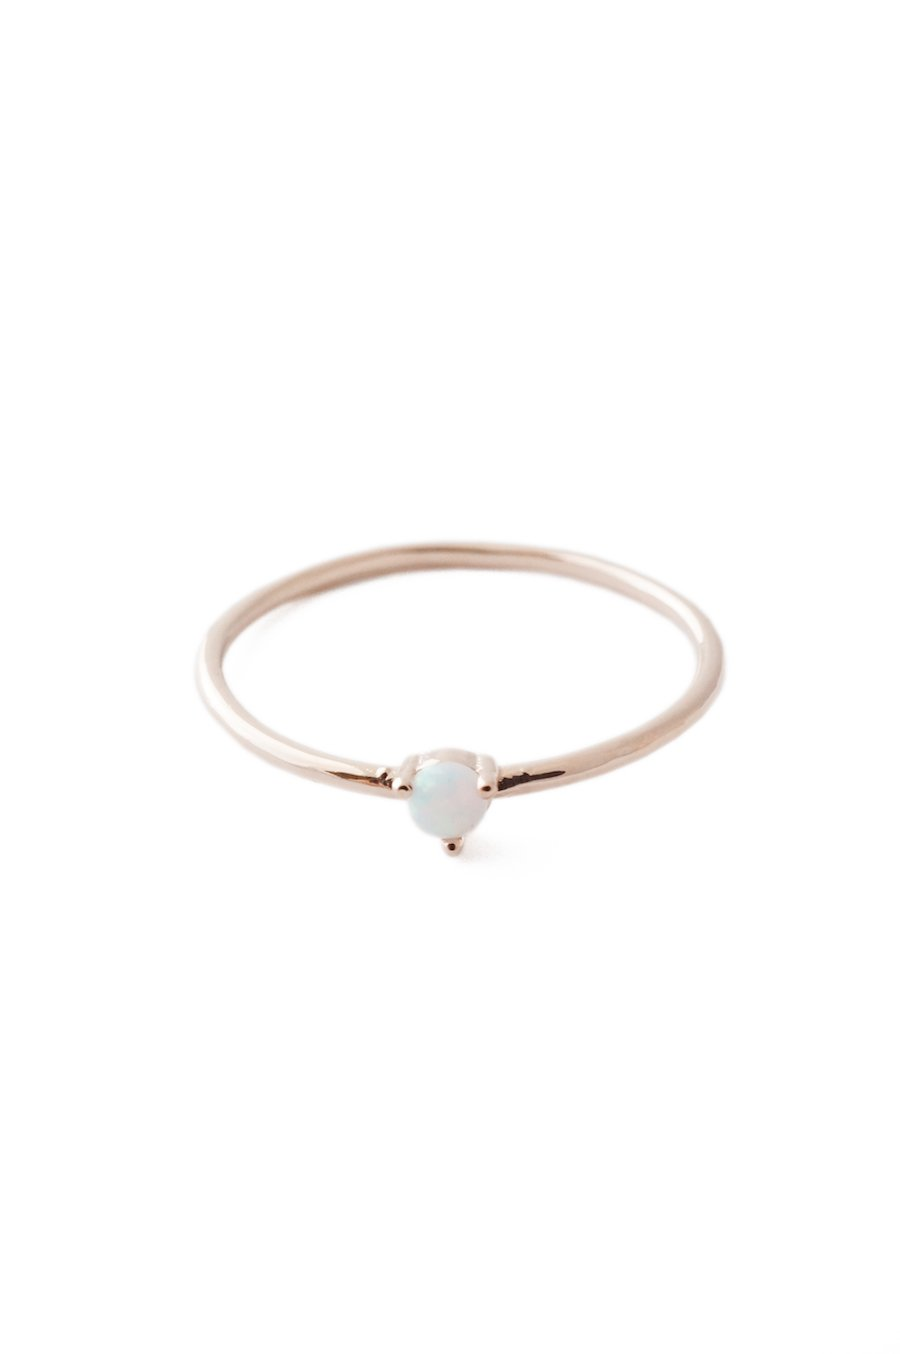 HONEYCAT Opal Orb Crystal in 18k Rose Gold Plate | Minimalist, Delicate Jewelry (Rose Gold 7) by HONEYCAT